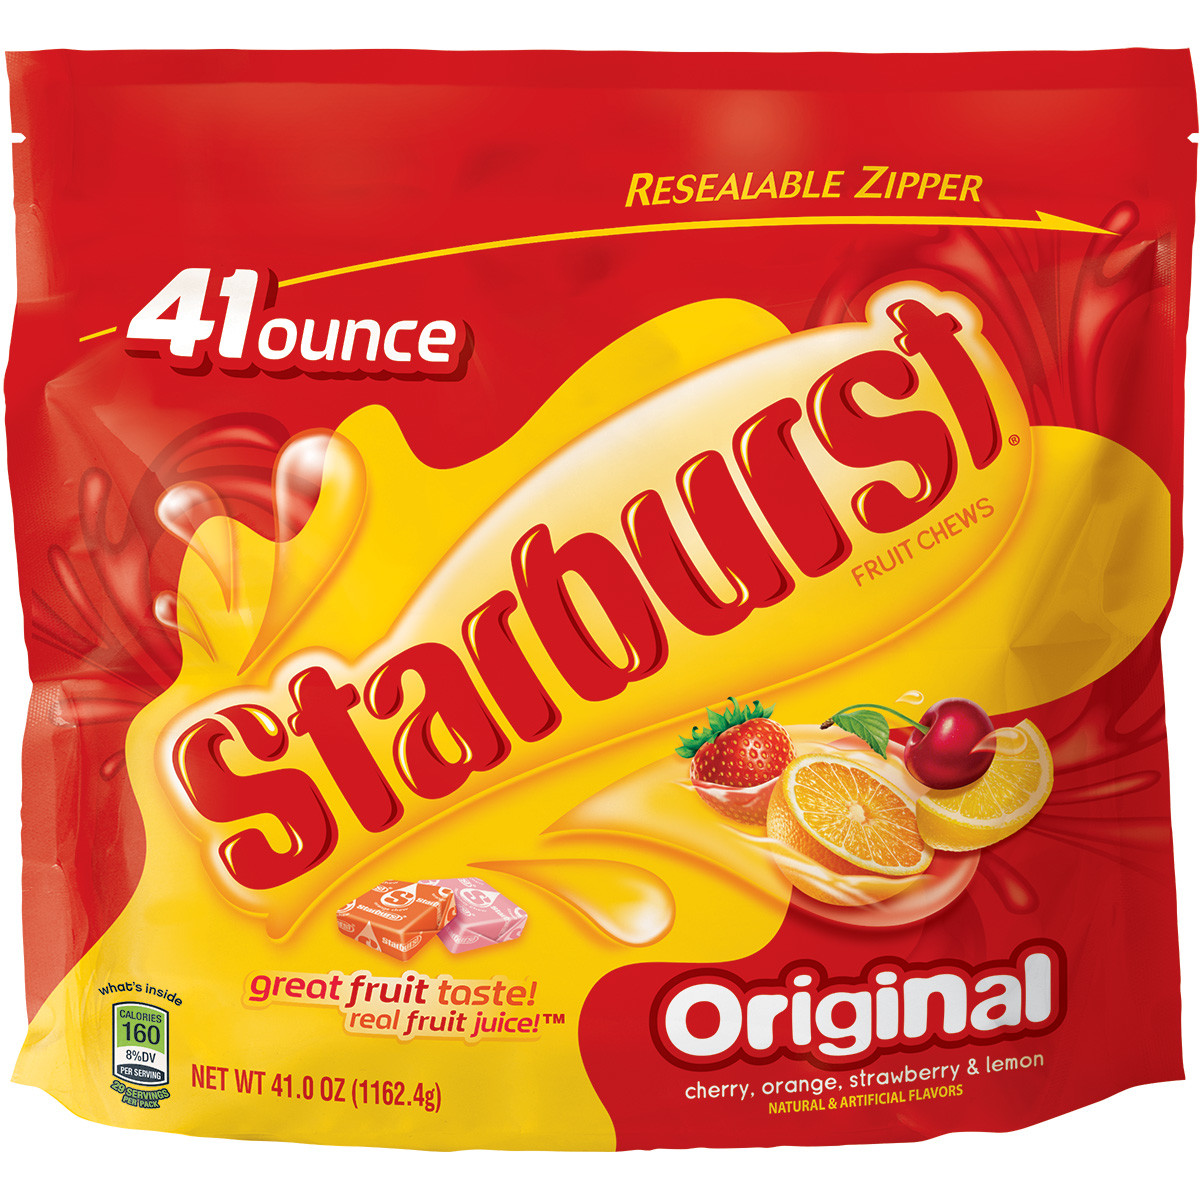 Starburst, Original Fruit Chews Candy, 41 Oz